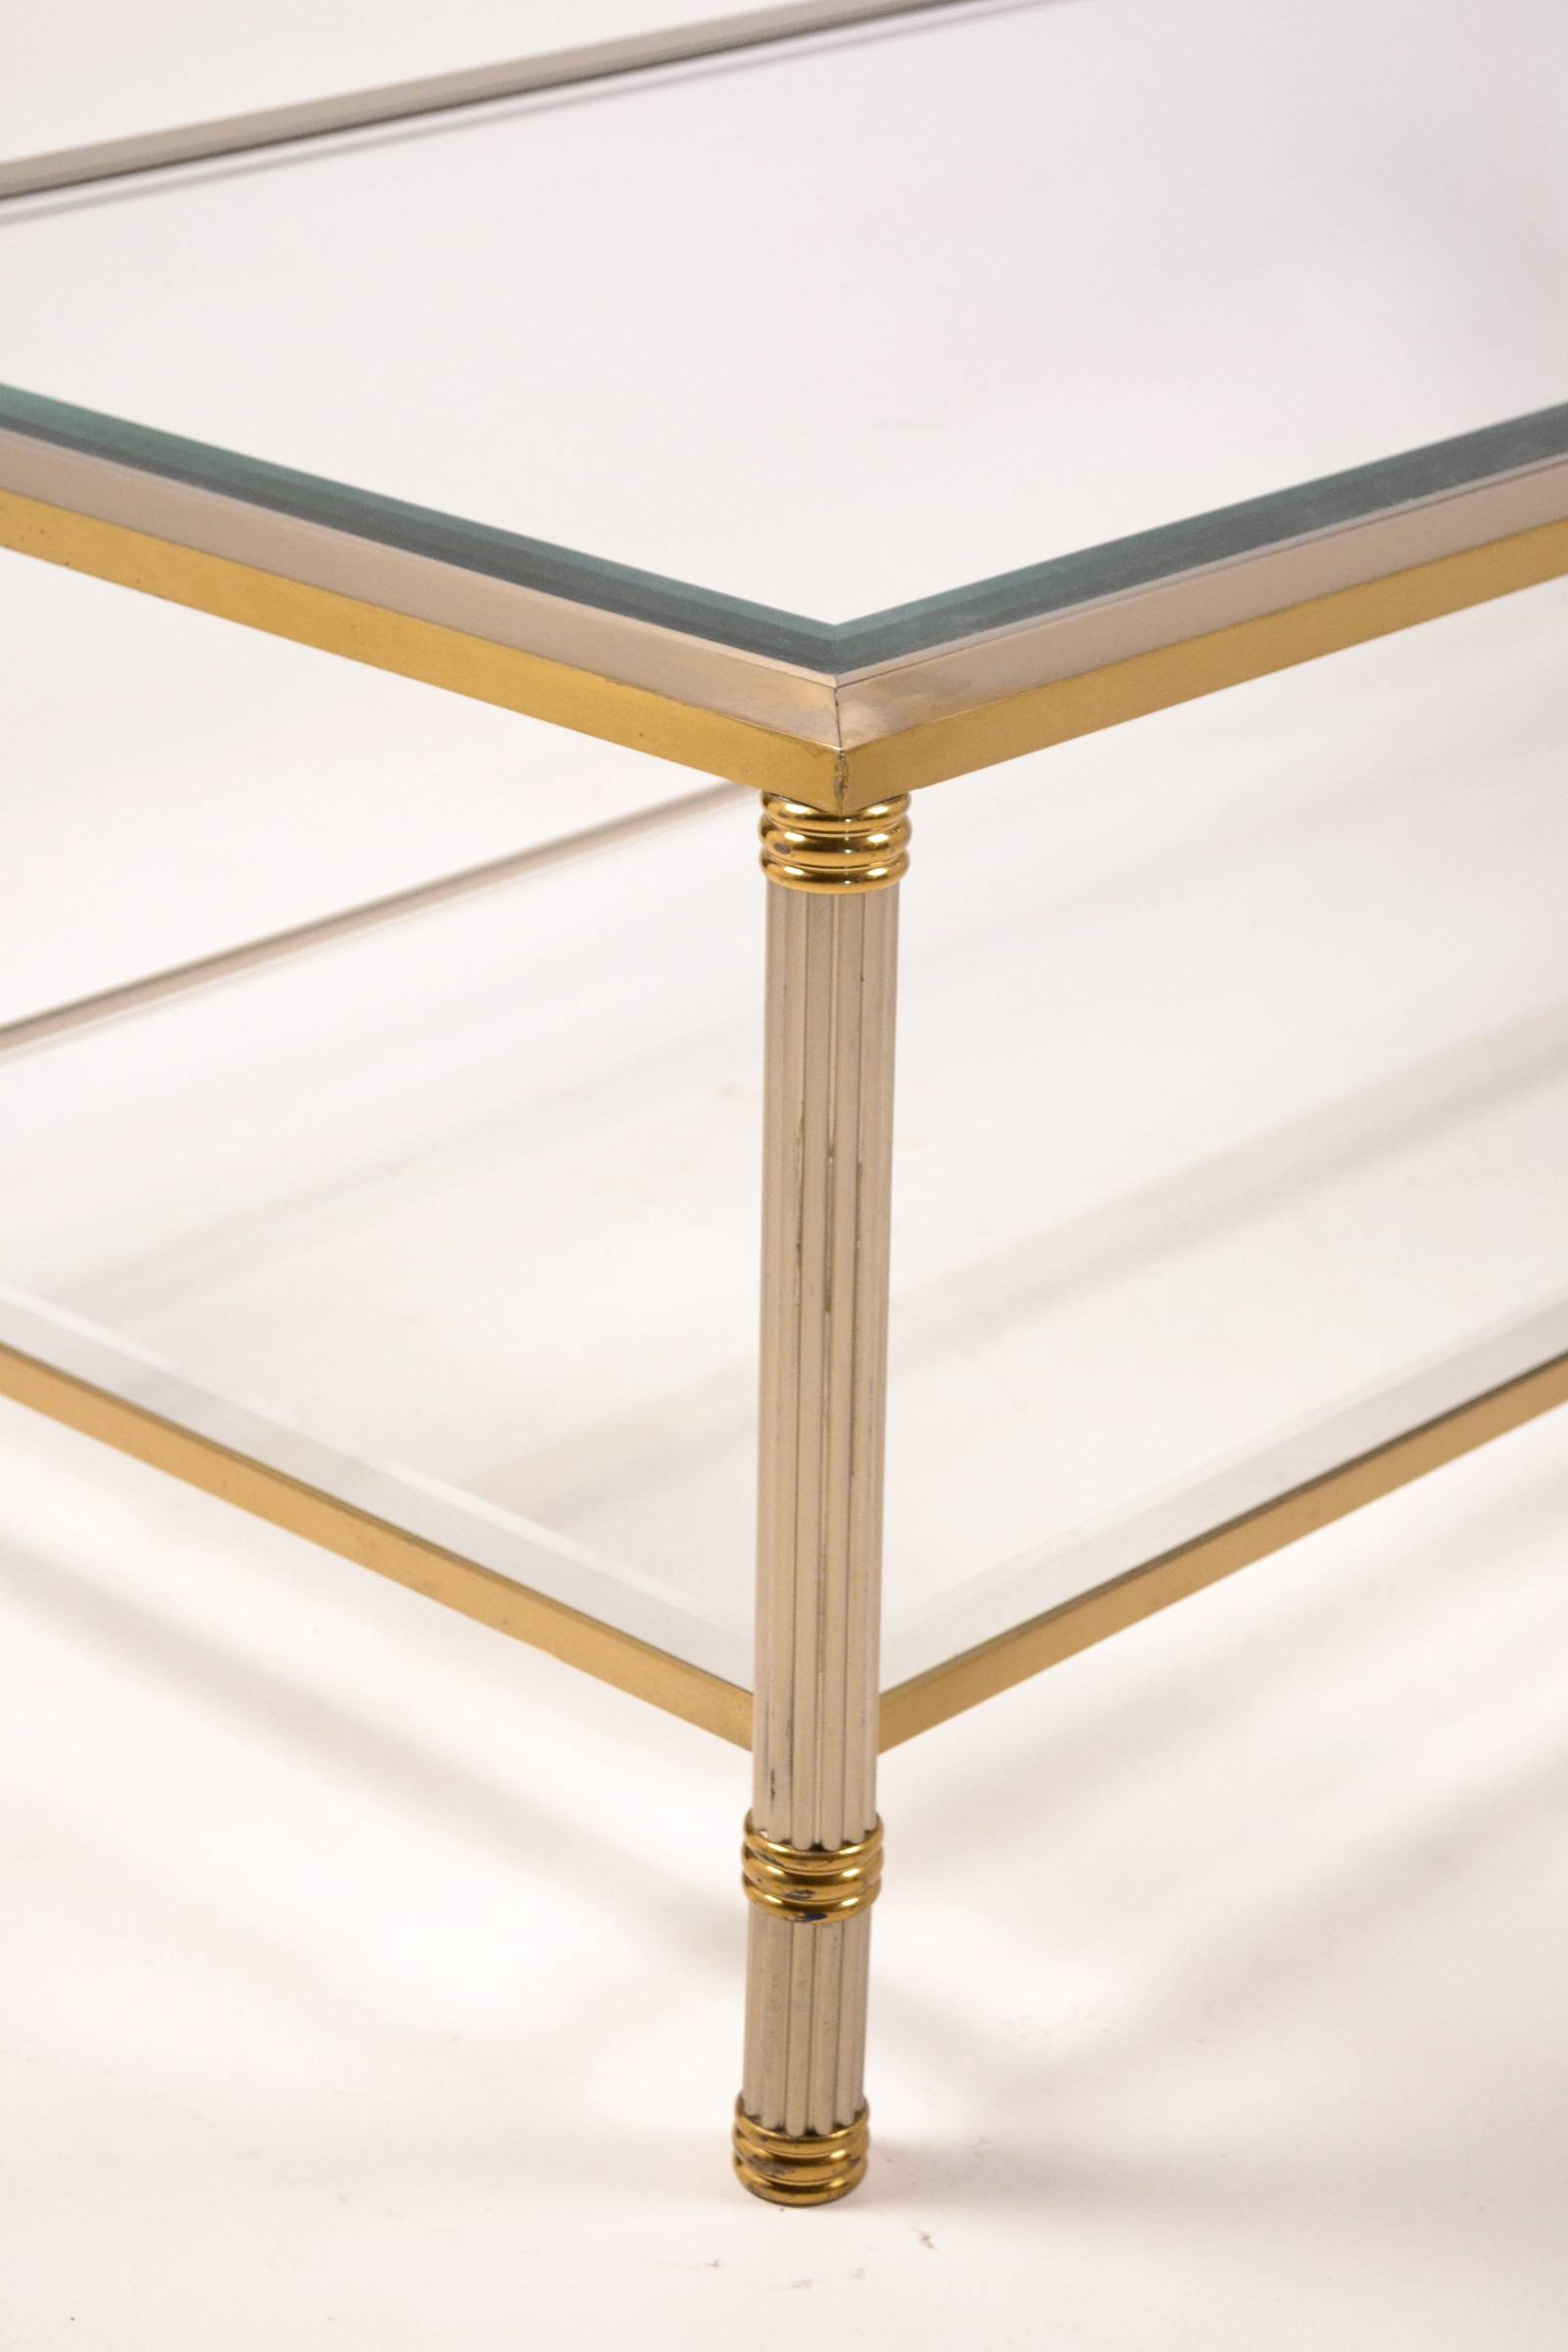 French Vintage Brass & Chrome Coffee Table - Jean Marc Fray regarding Chrome Coffee Tables (Image 15 of 30)